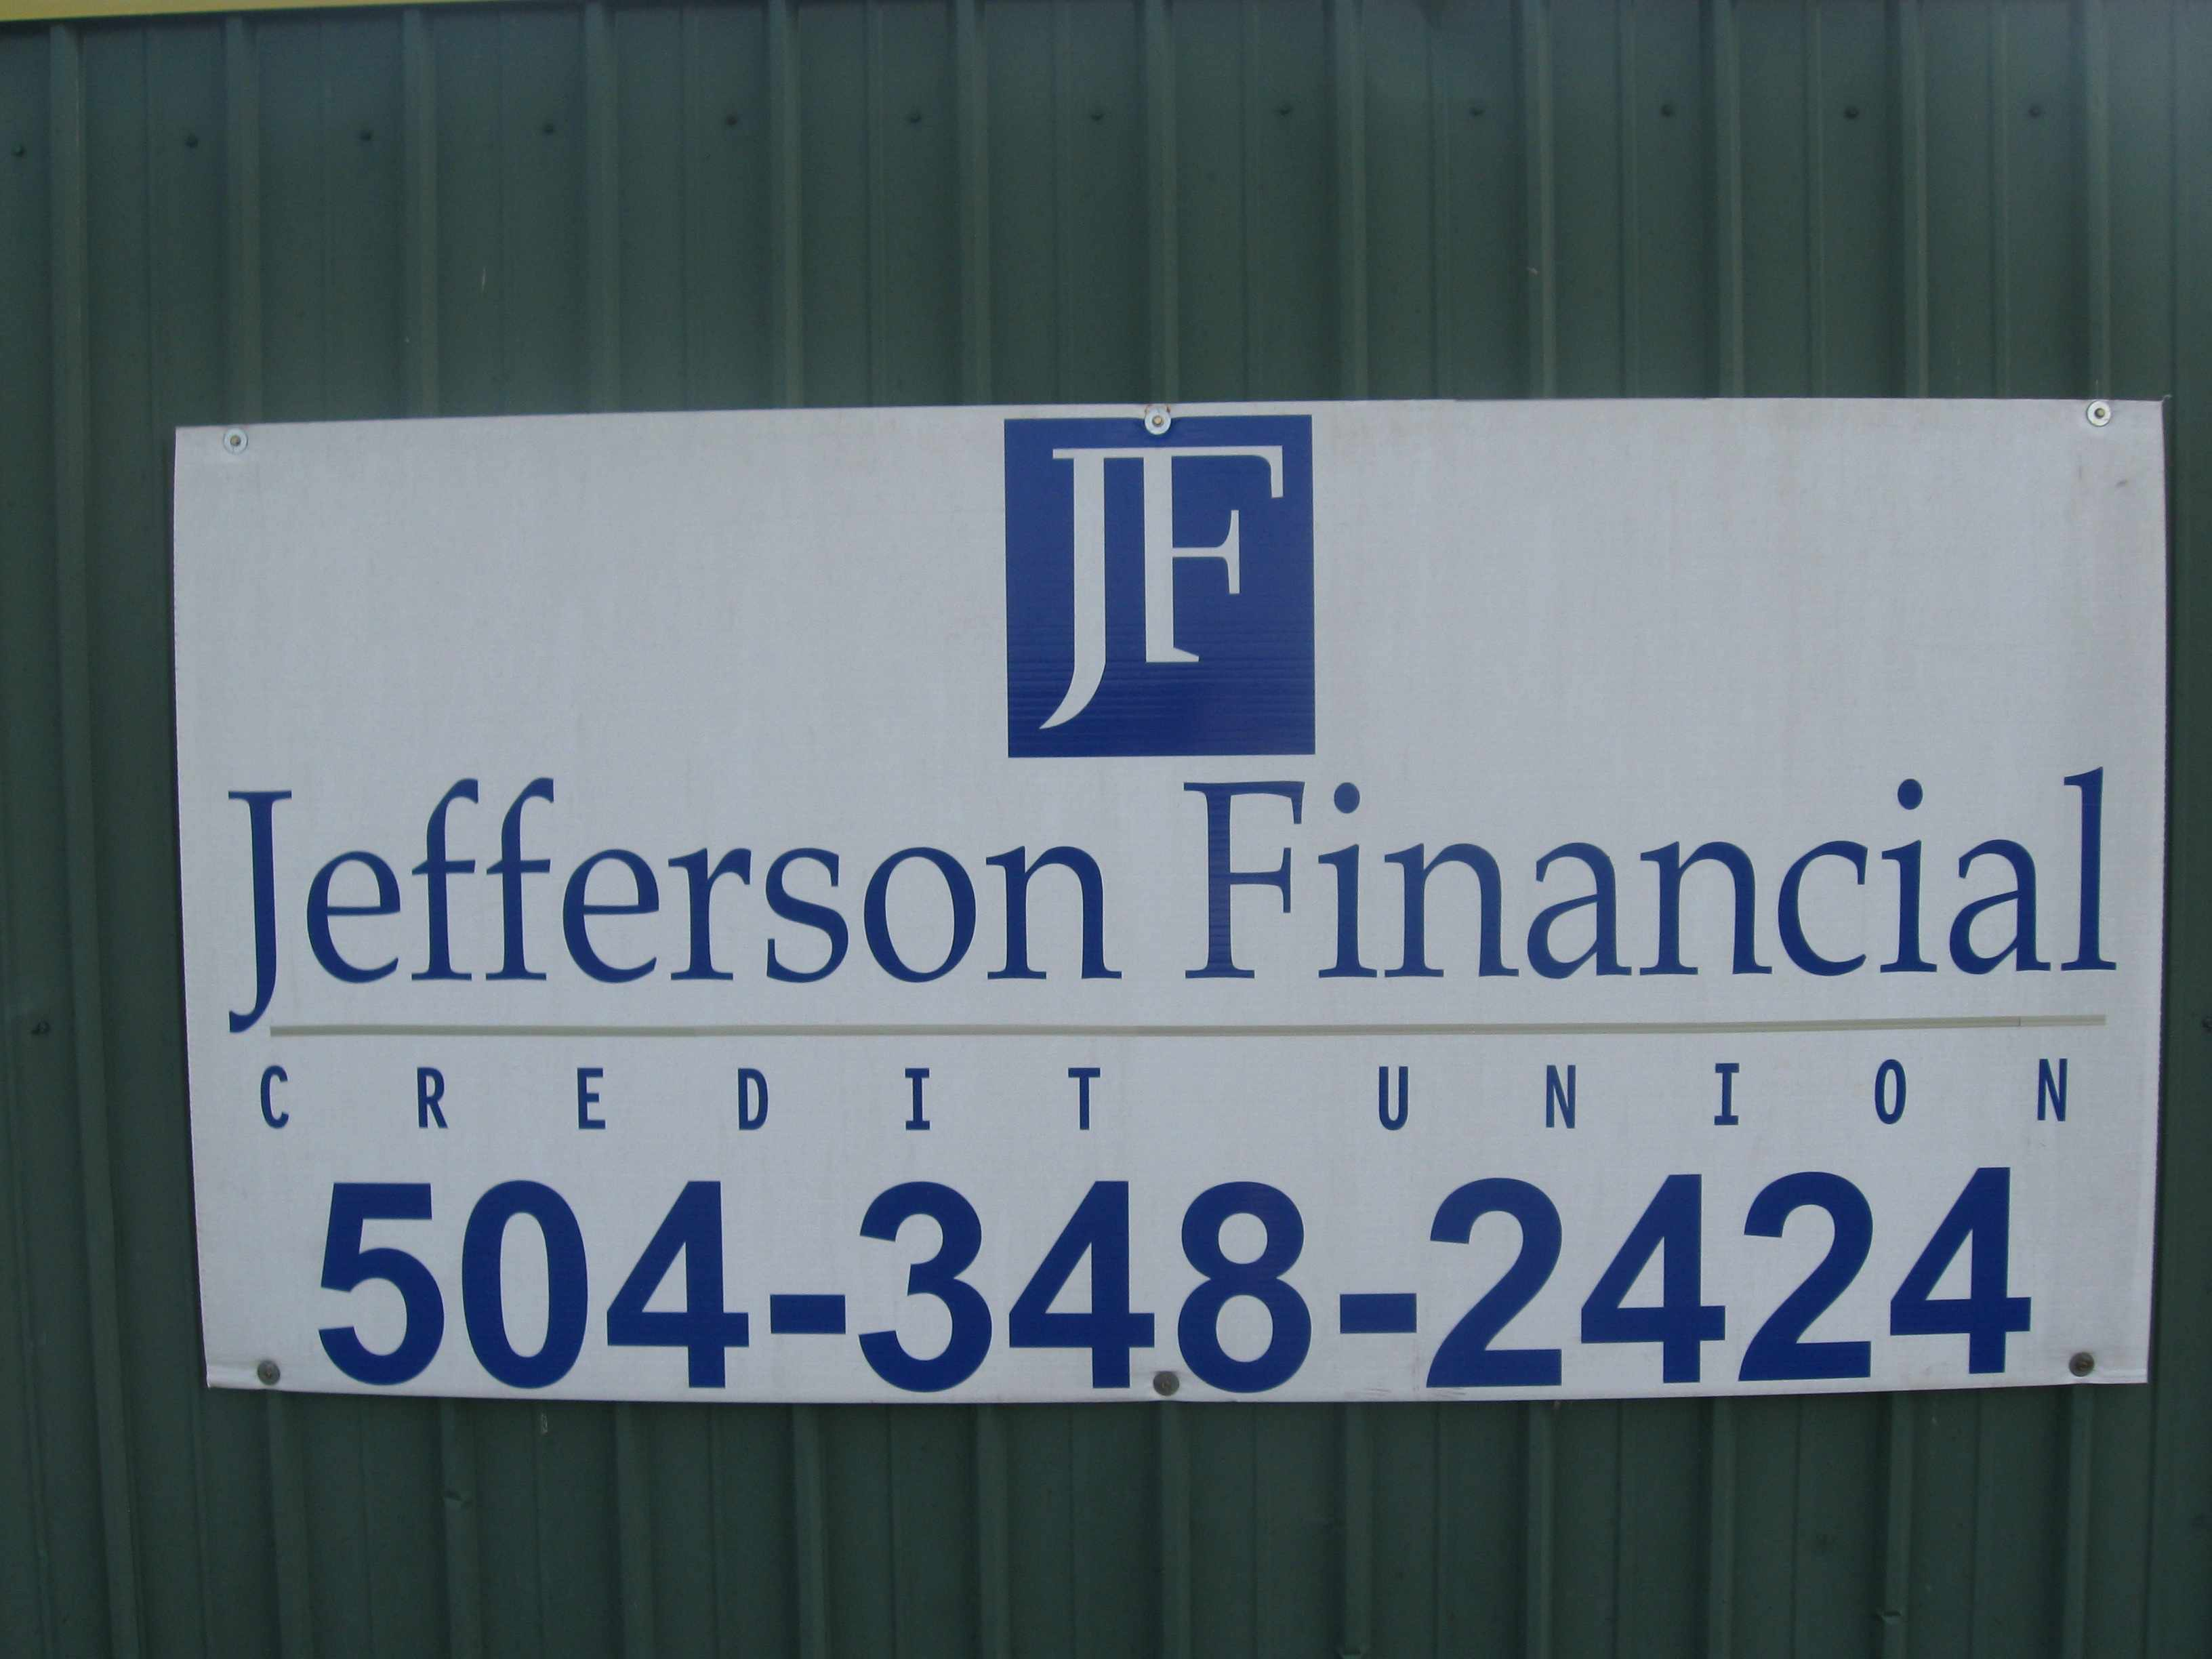 Jefferson Financial